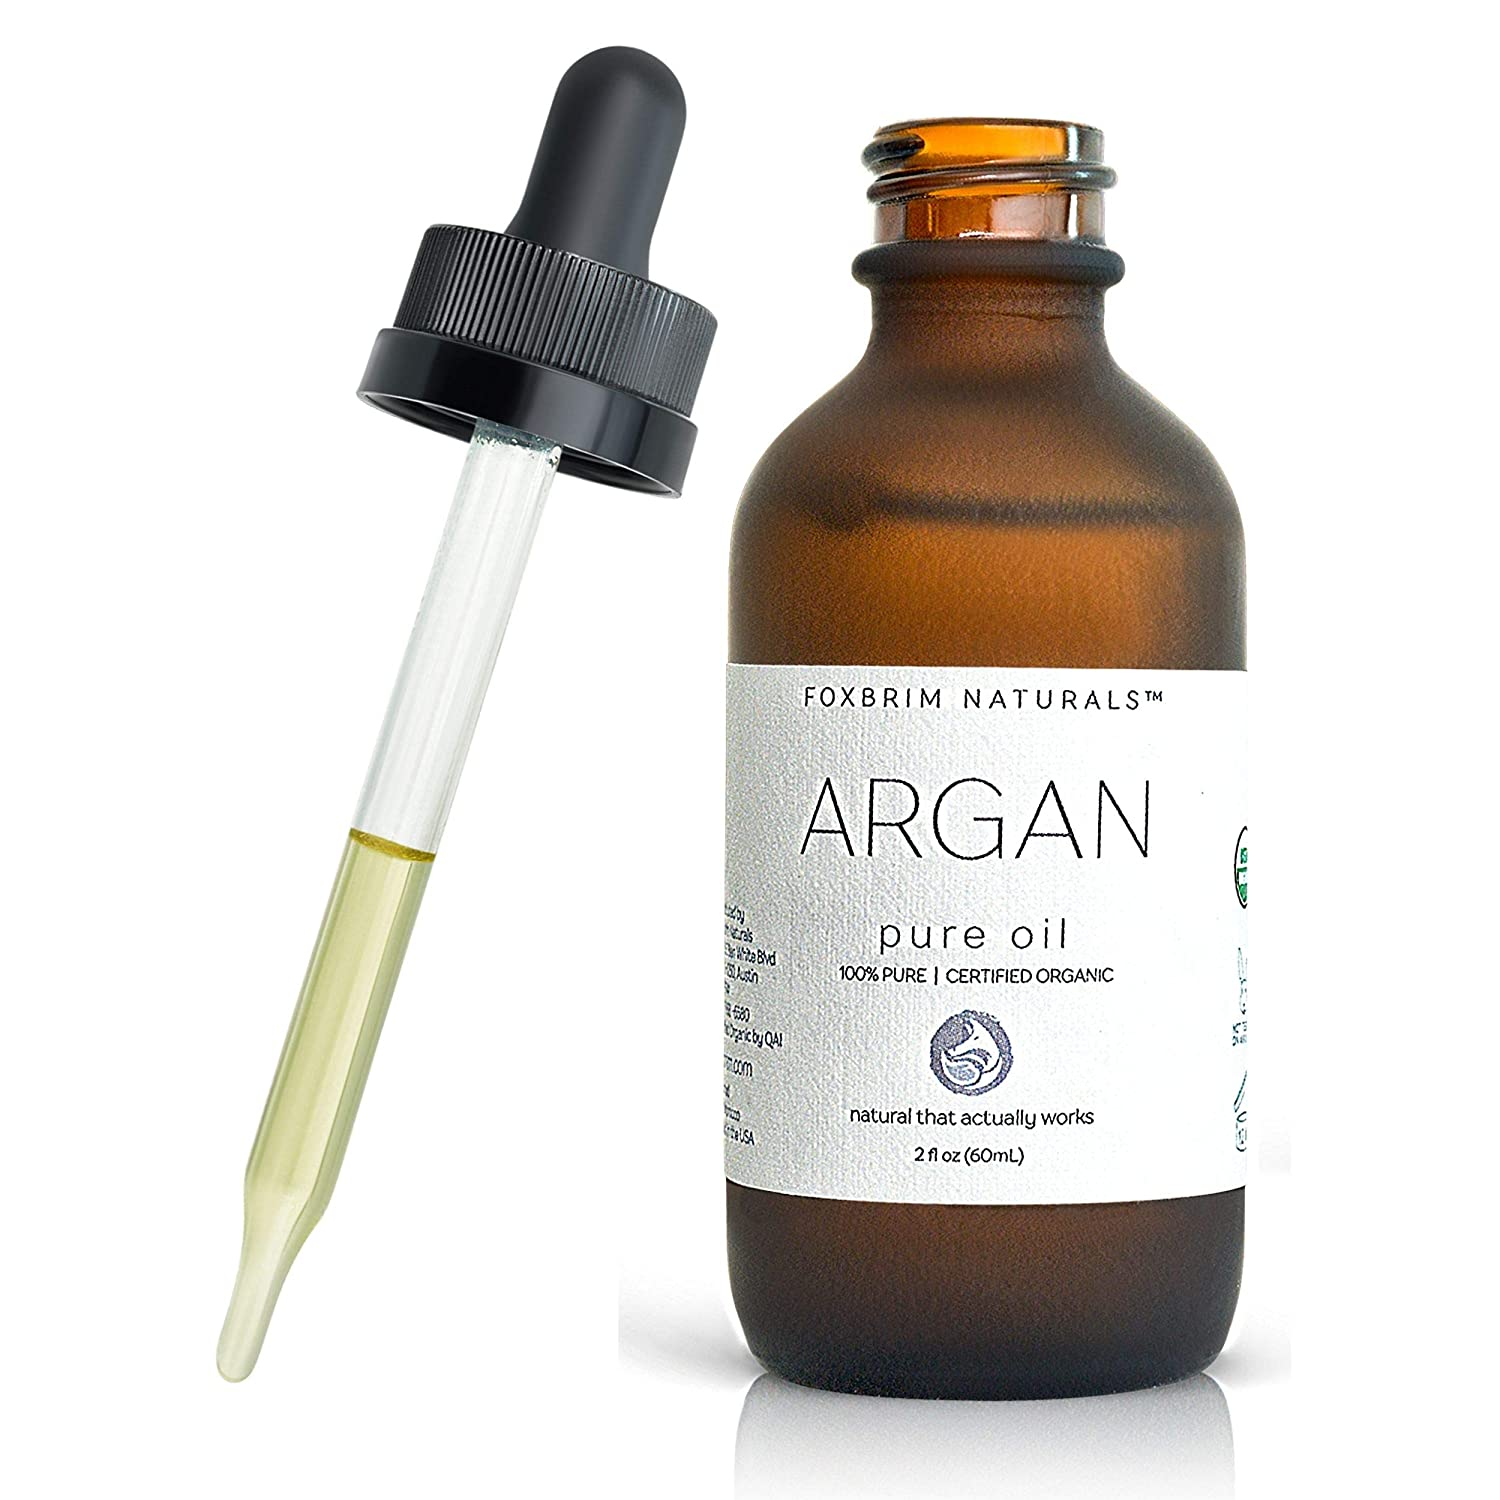 Top 10 Best Argan Oil For Hair Reviews in 2020 8